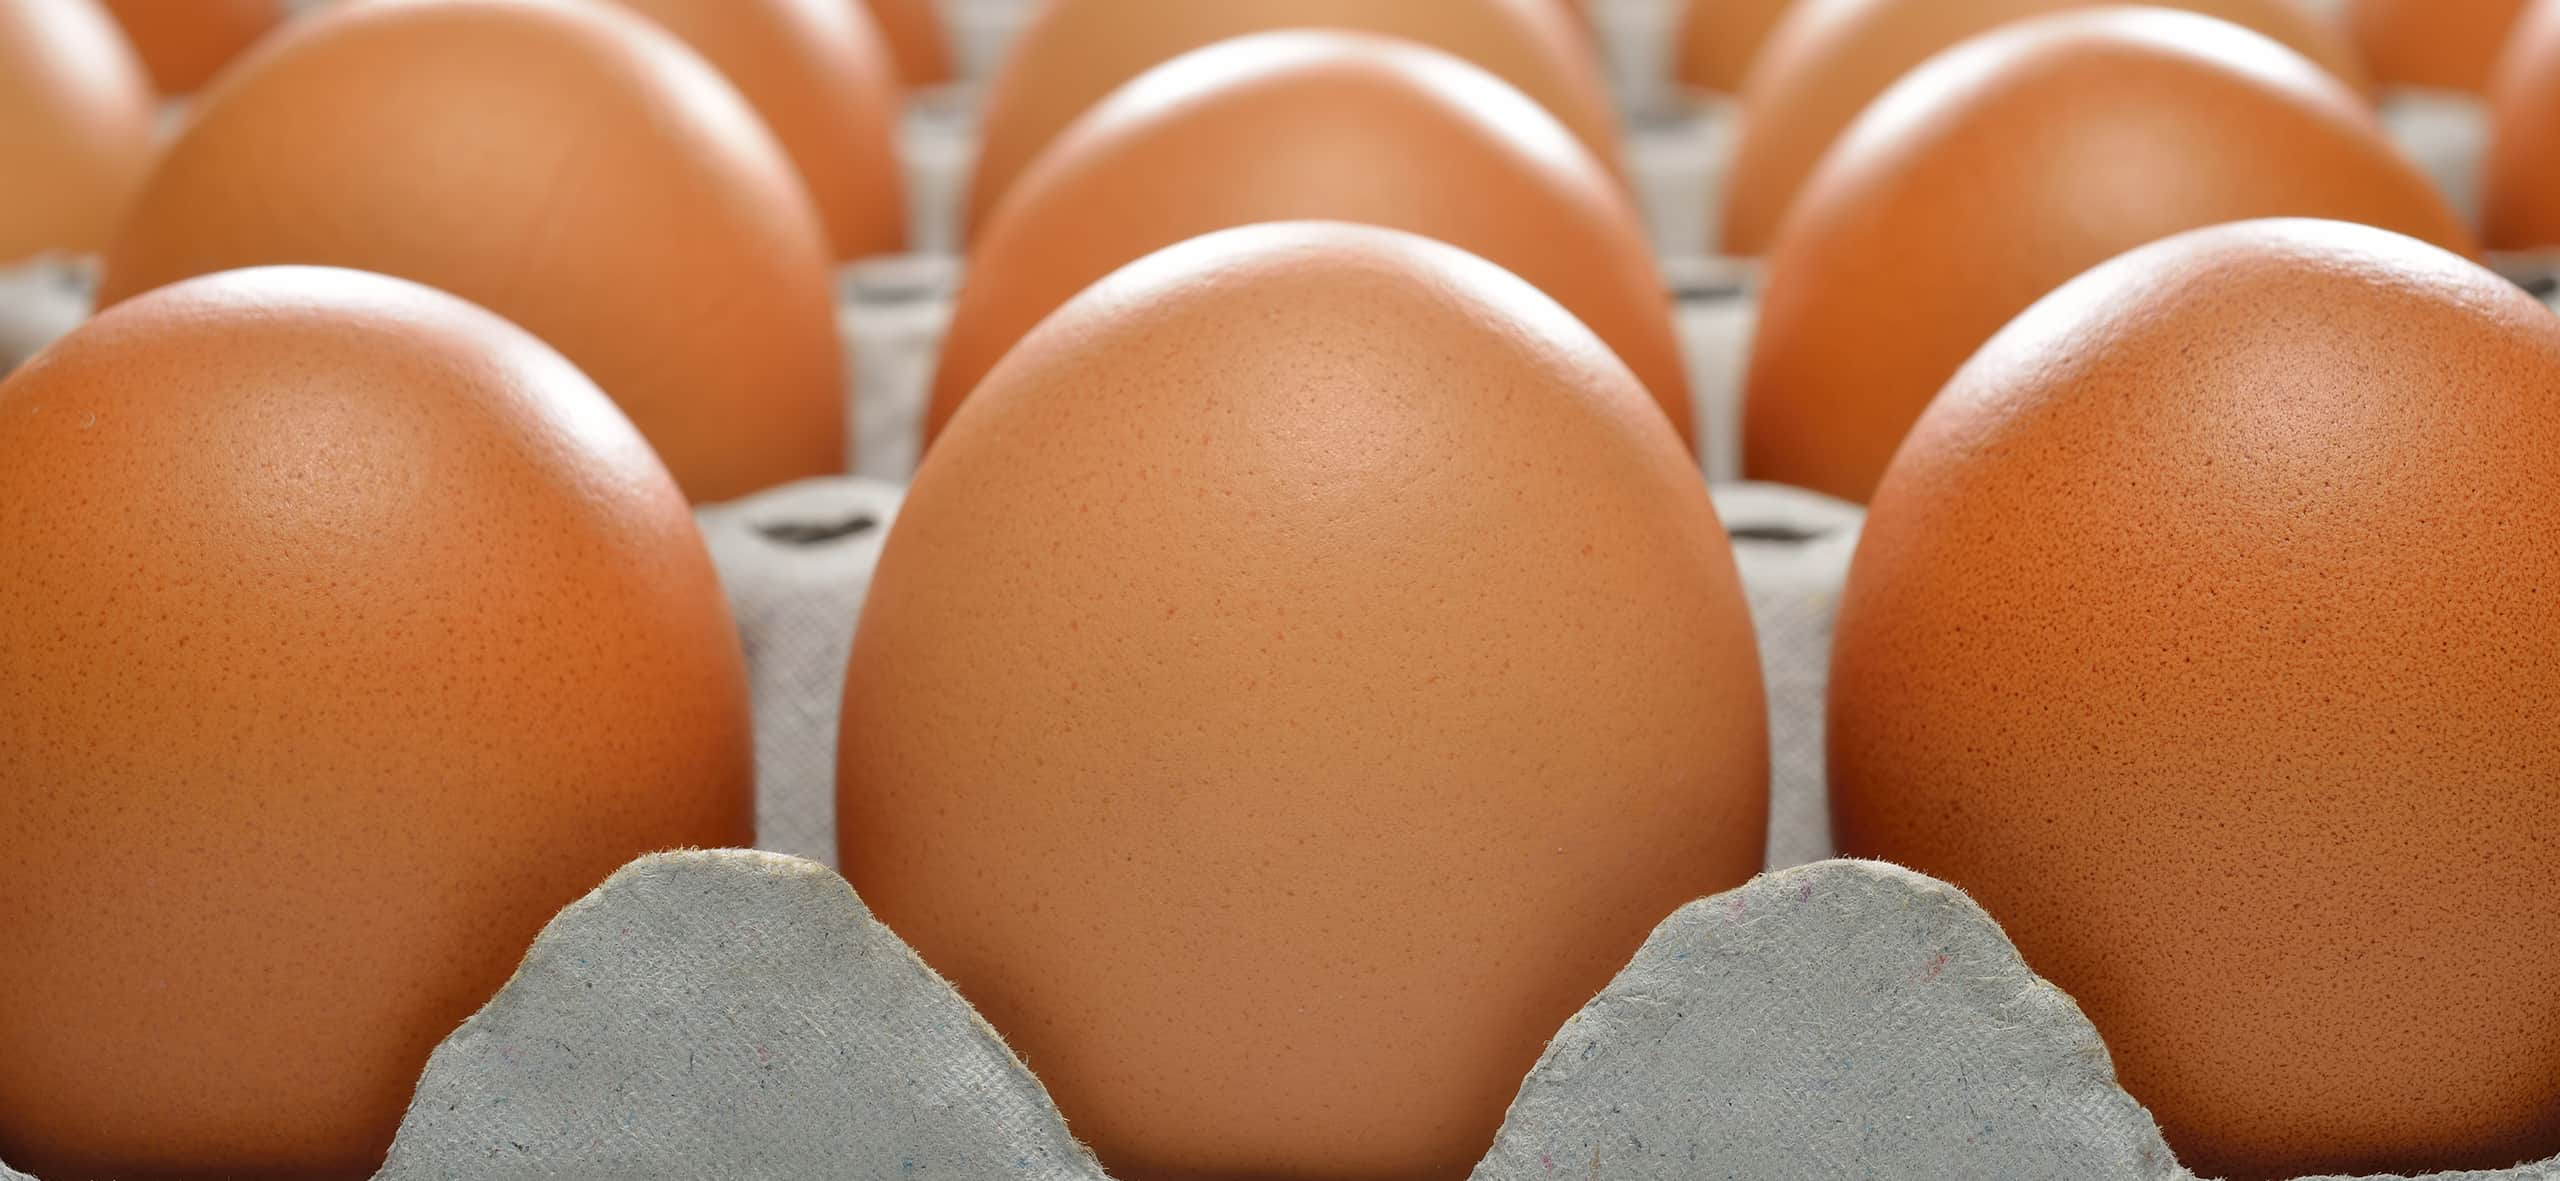 Egg: a little big ally for health and economy